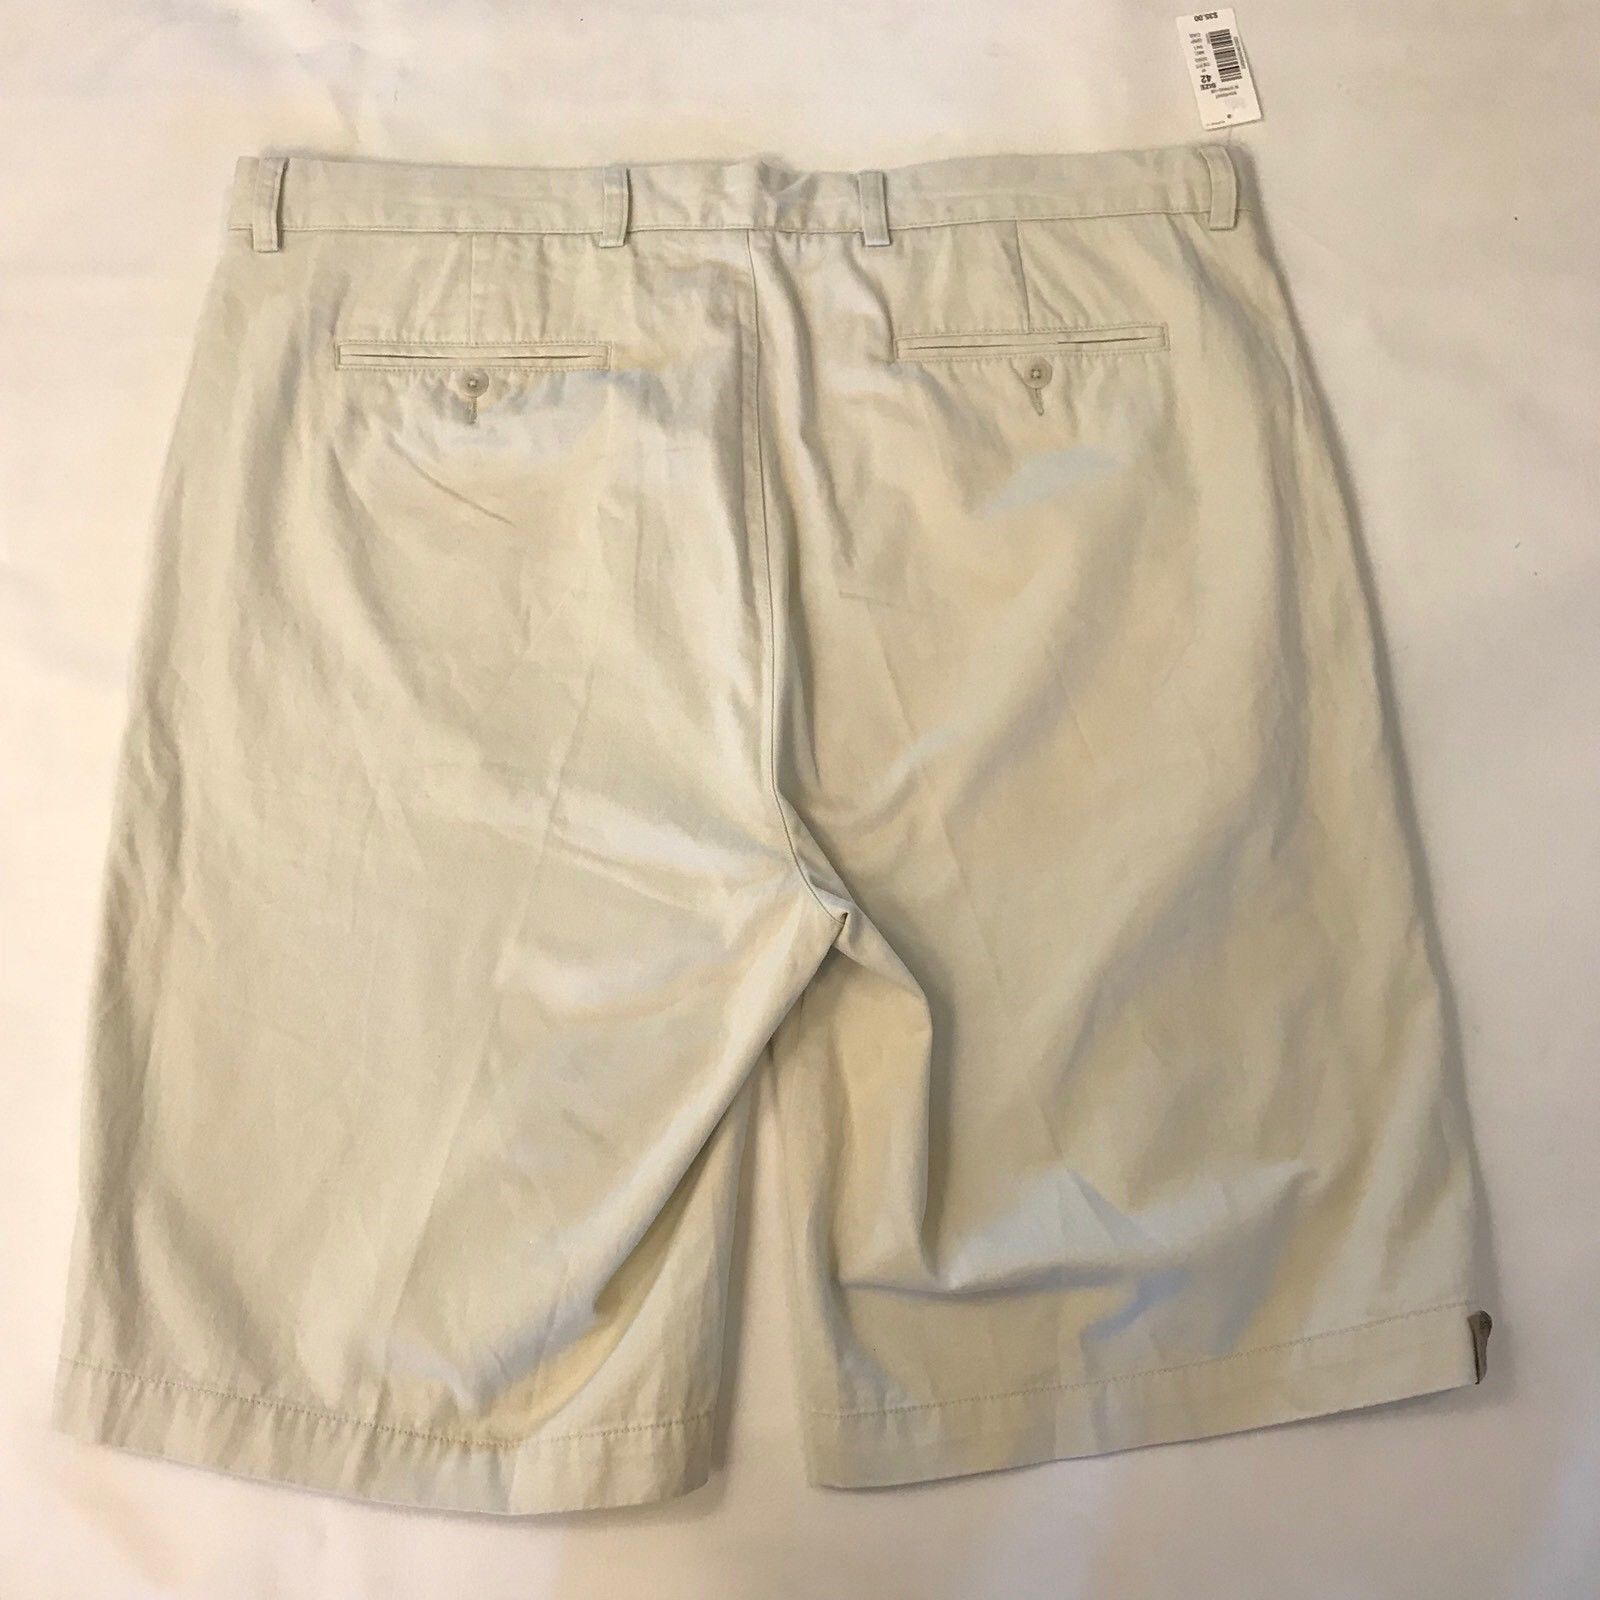 Roundtree & Yorke Men's Shorts 42 Tall Relaxed Fit Off White Light Khaki